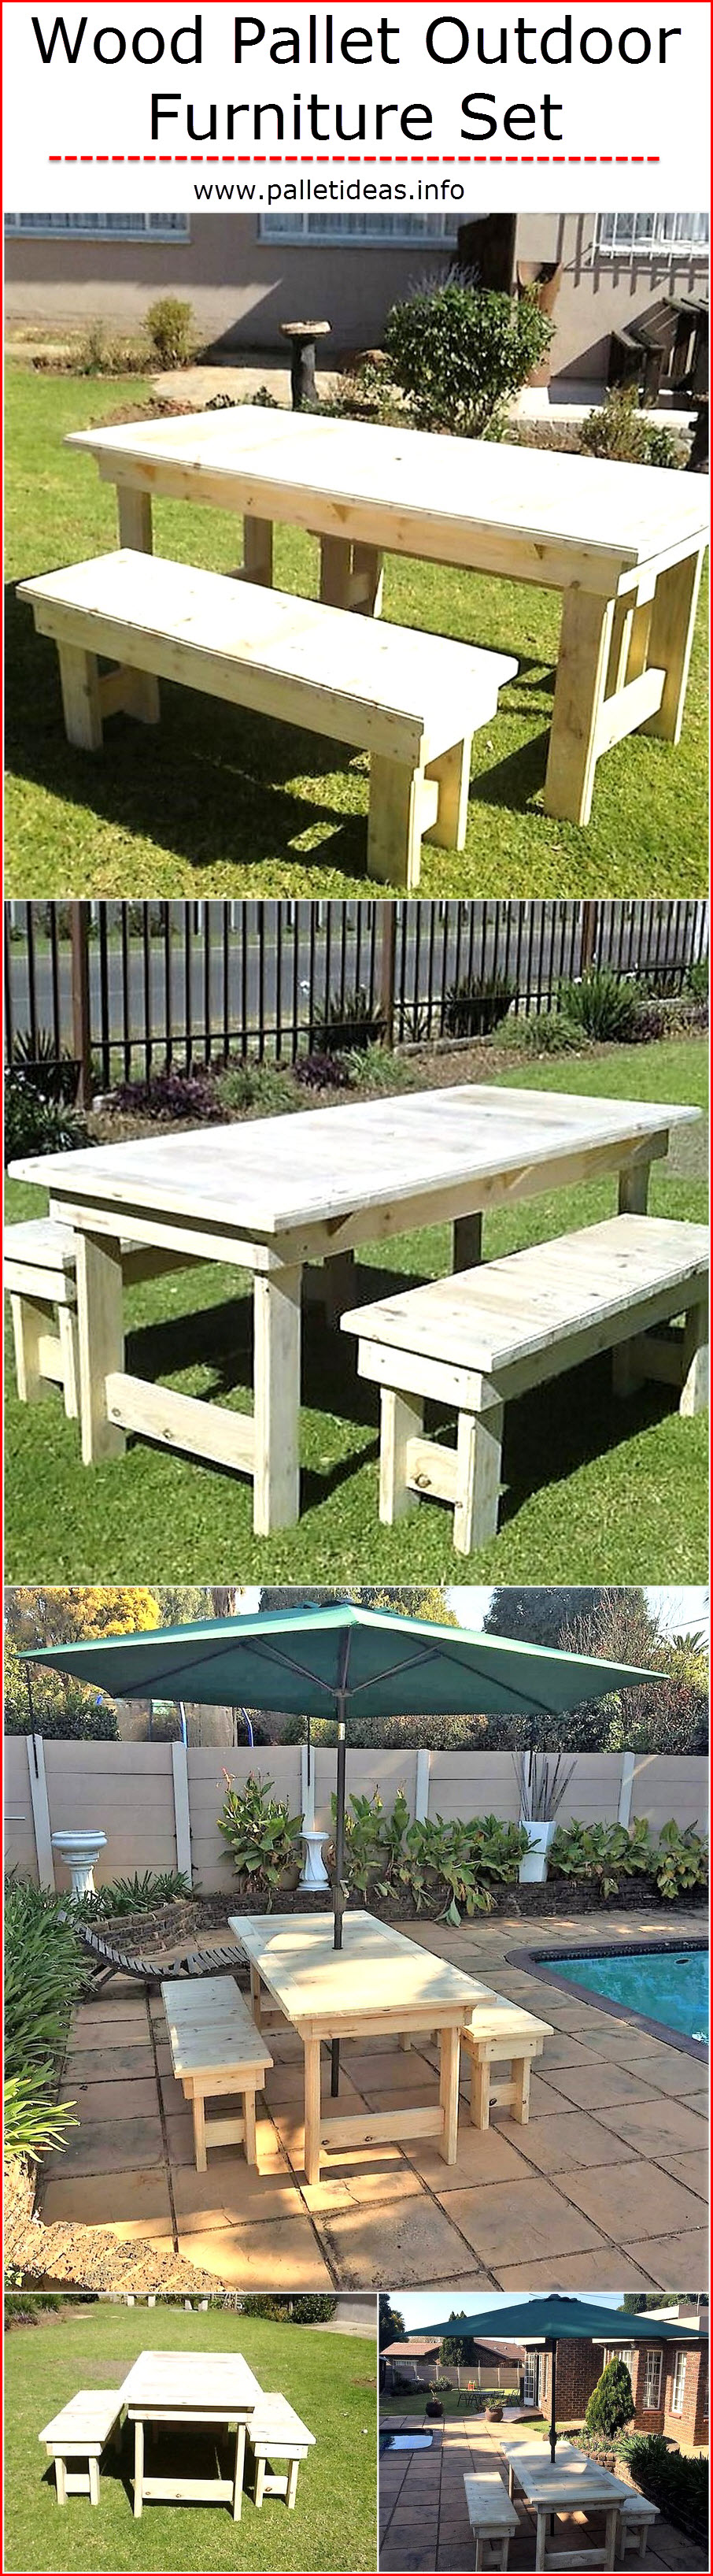 wood-pallet-outdoor-furniture-set